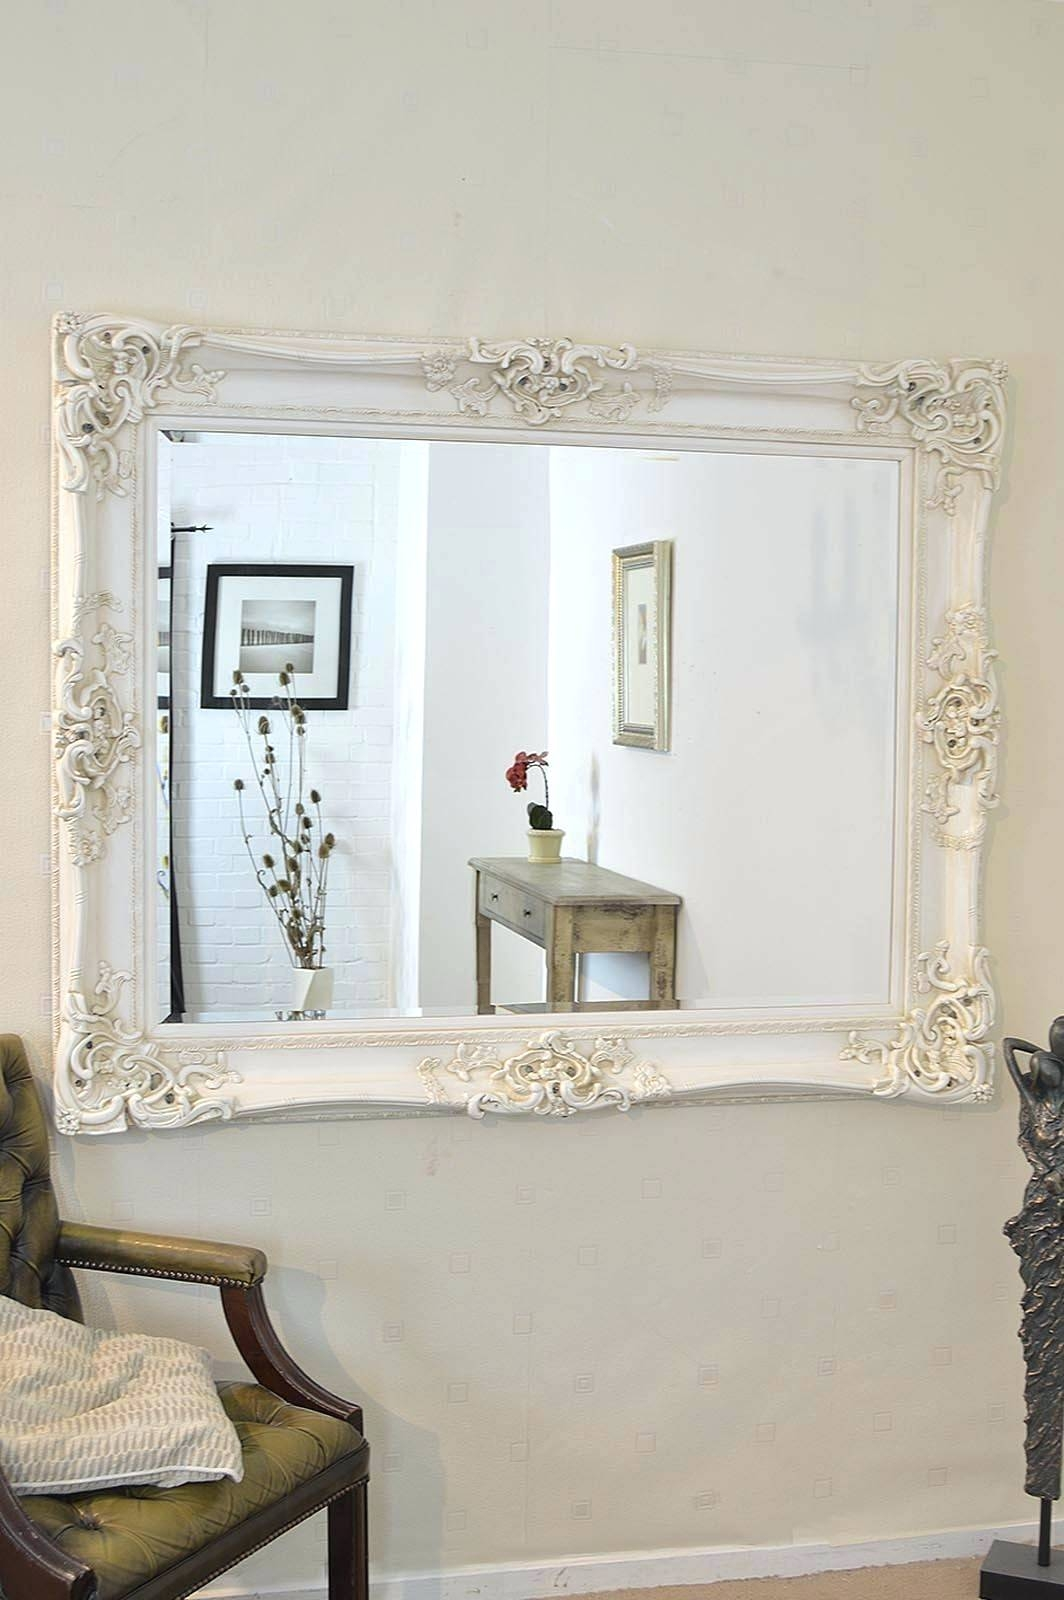 Wall Mirrors ~ Shabby Chic Wall Mirrors Shabby Chic Wall Mirrors in Large White Shabby Chic Mirrors (Image 15 of 15)